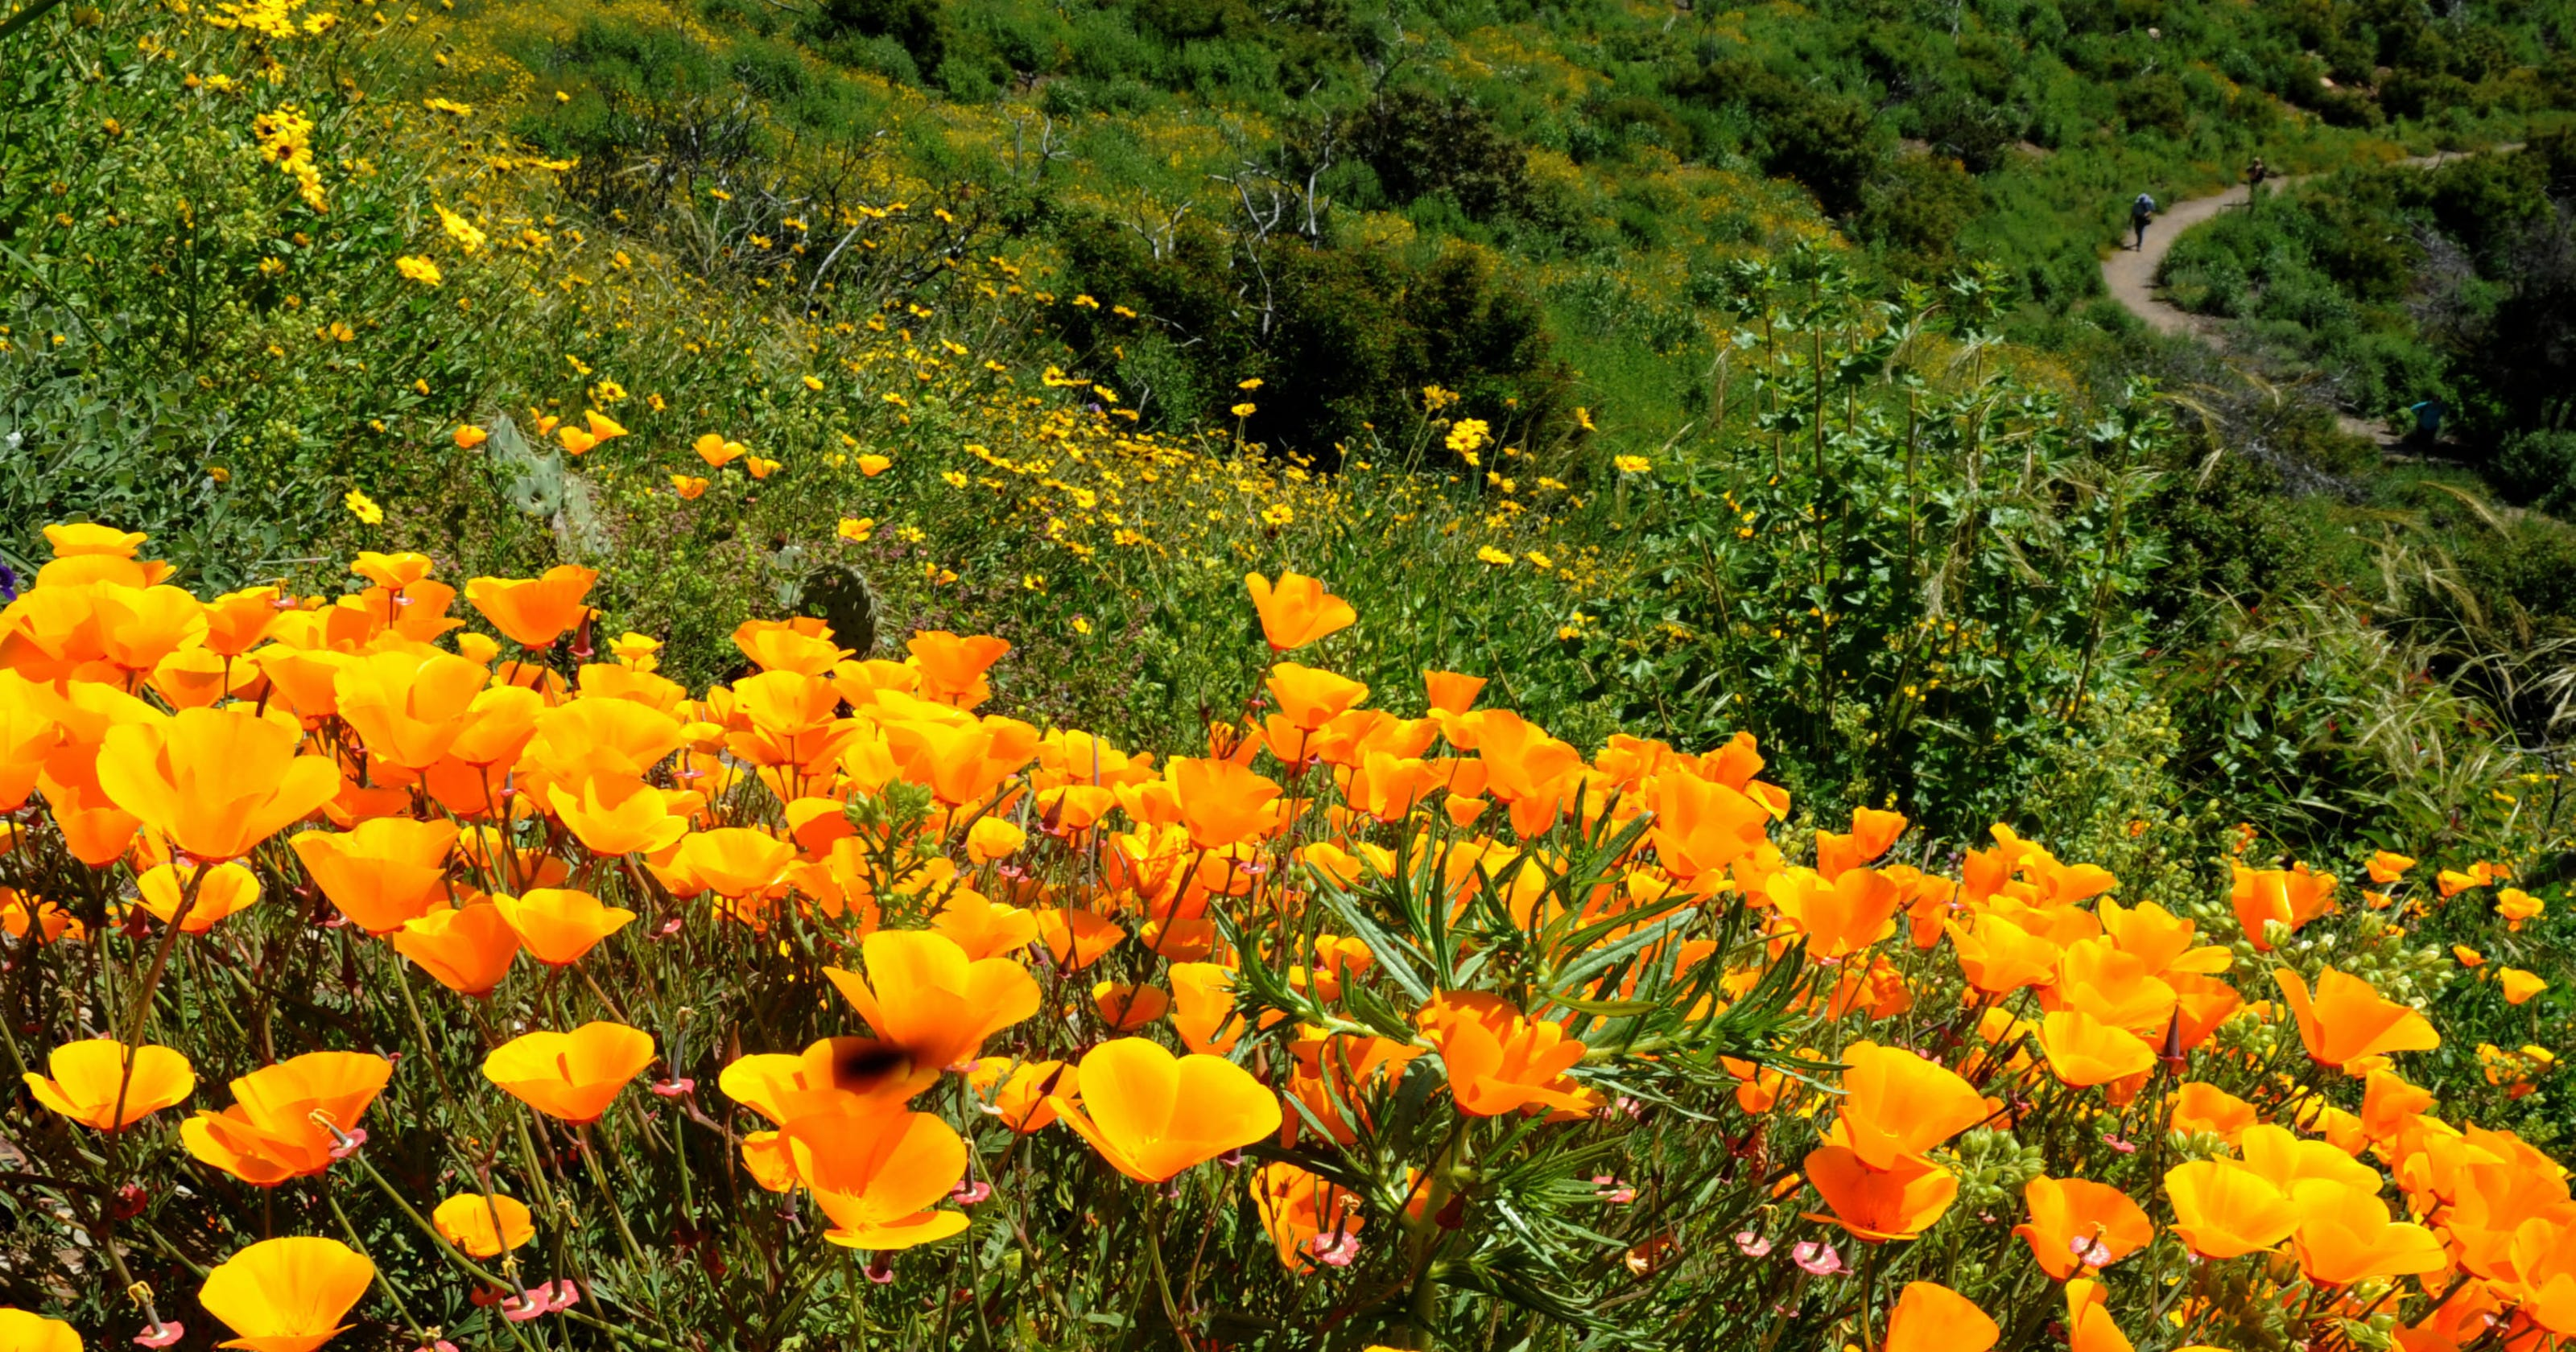 Ventura County super bloom: 'Get out there soon'